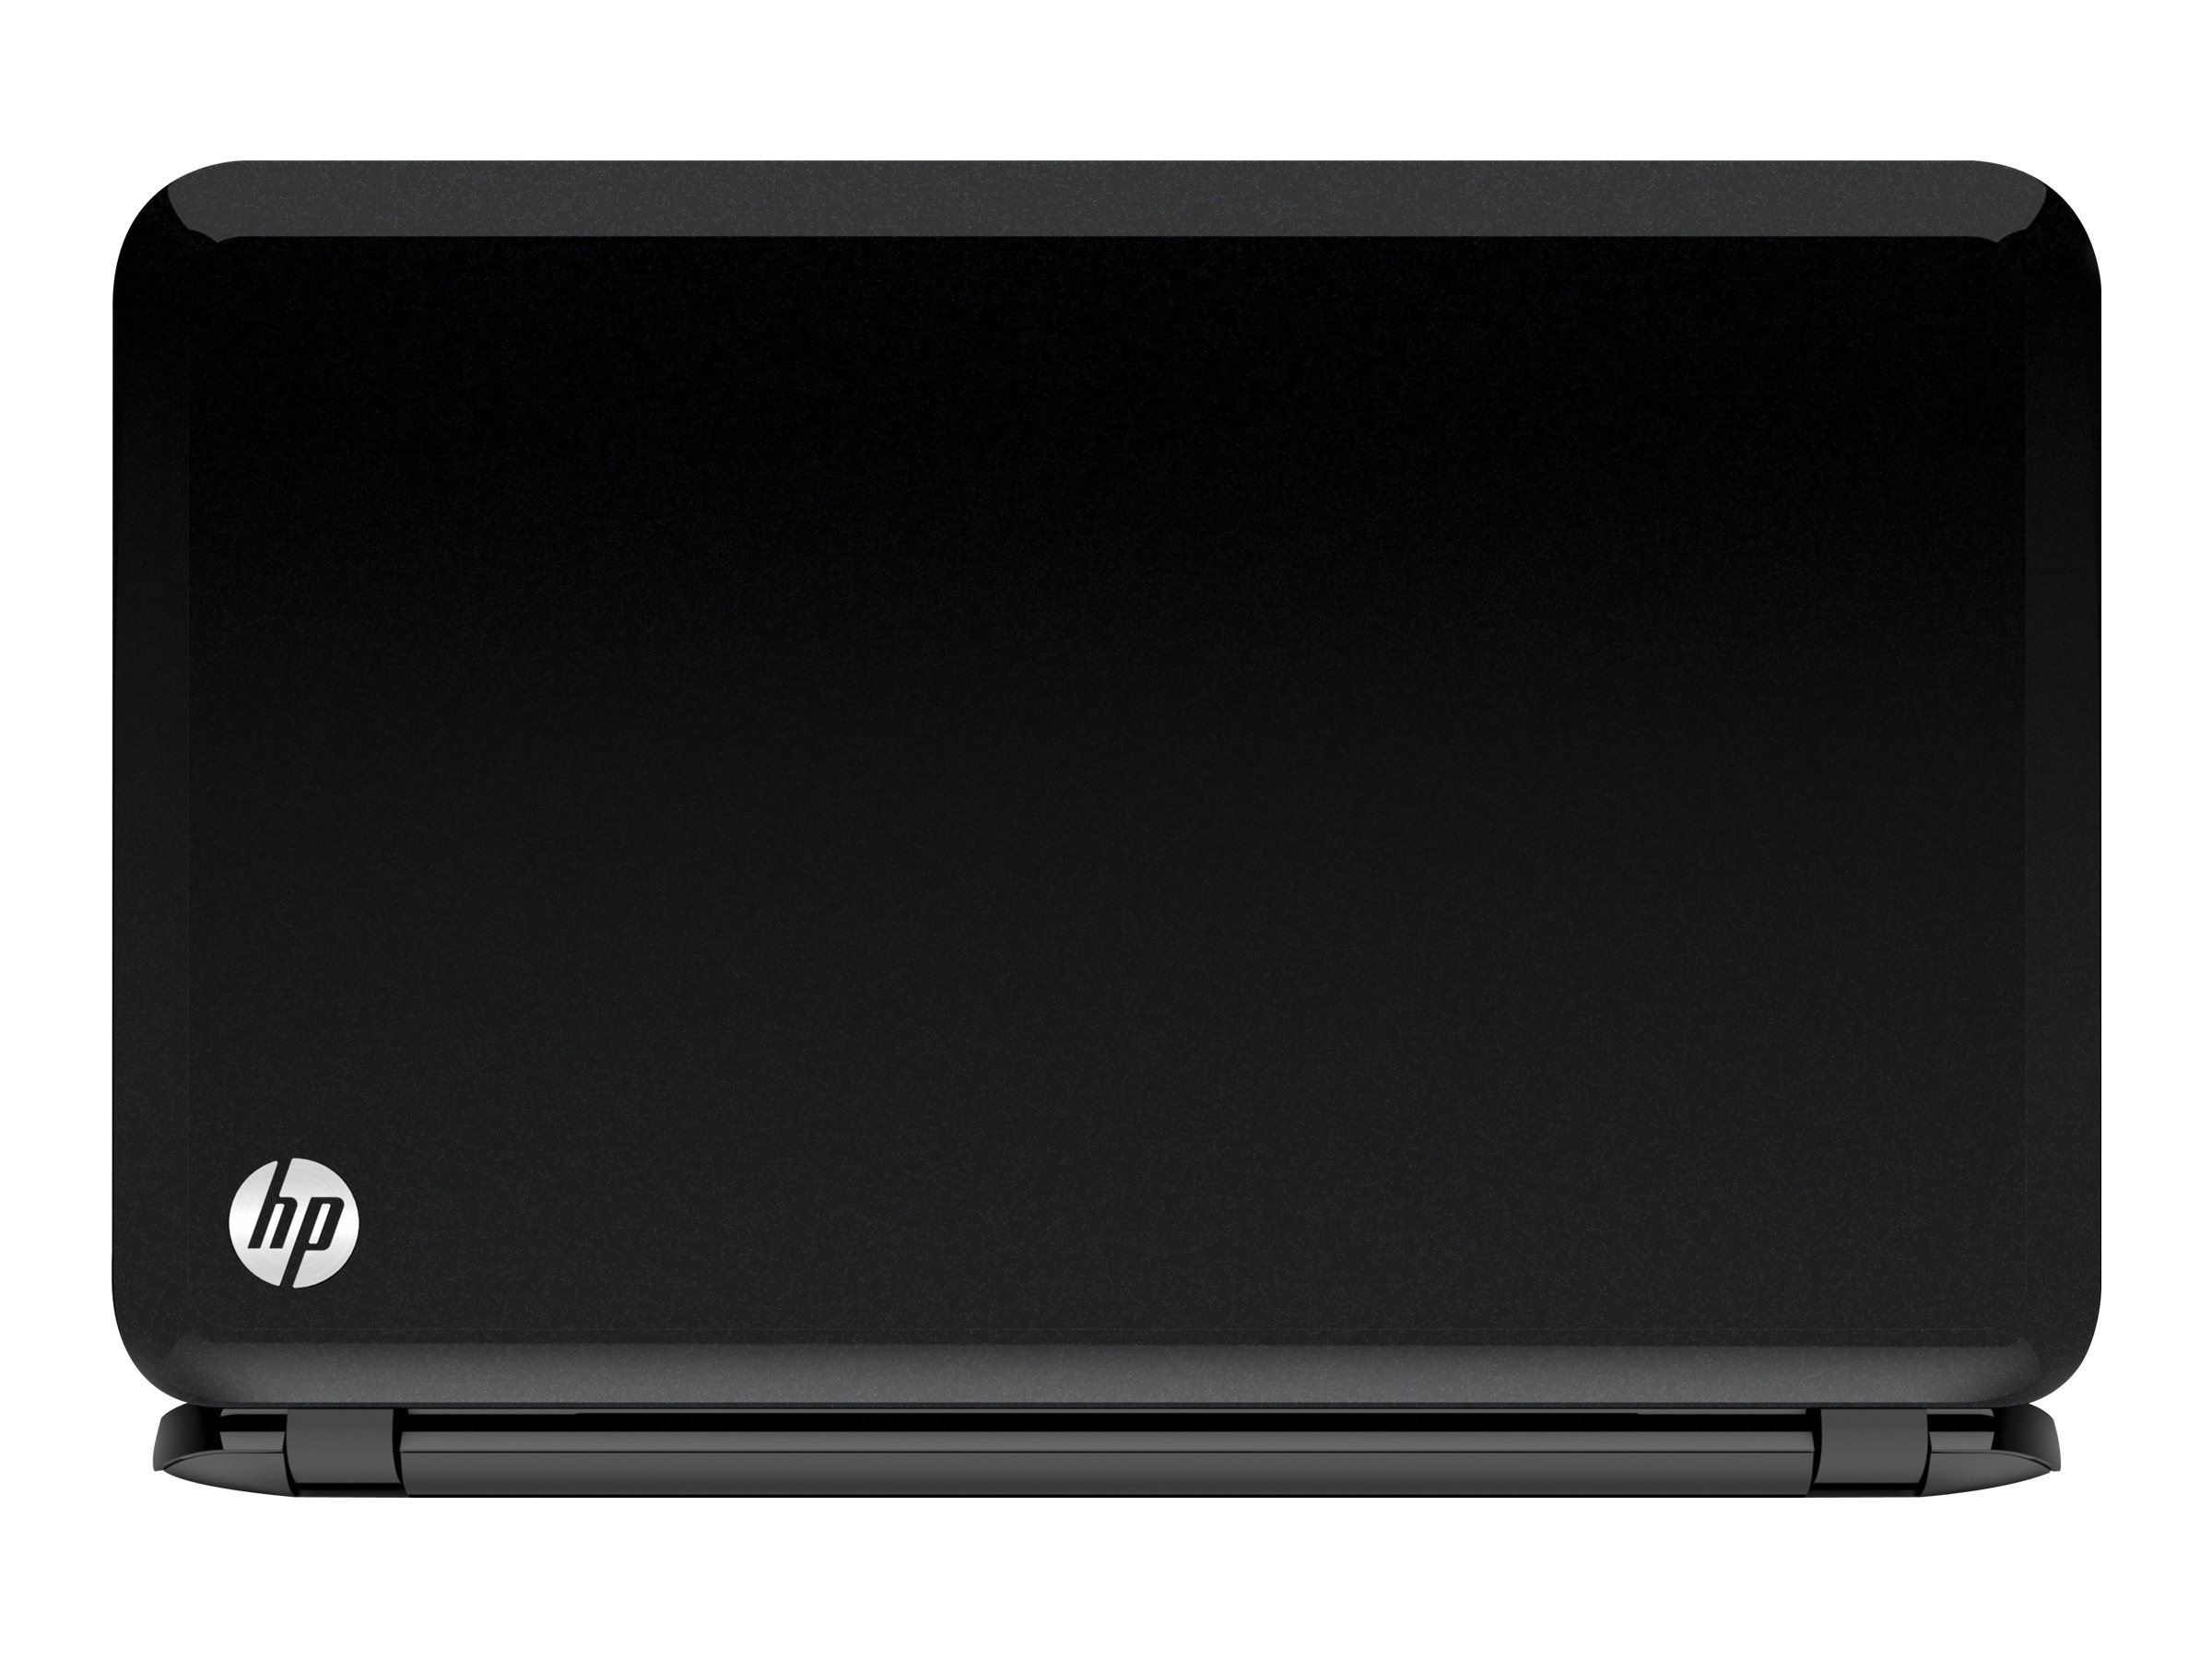 HP Pavilion 15-B010us SleekBook : 1.5GHz Core i3 15.6in display, C2M98UA#ABA